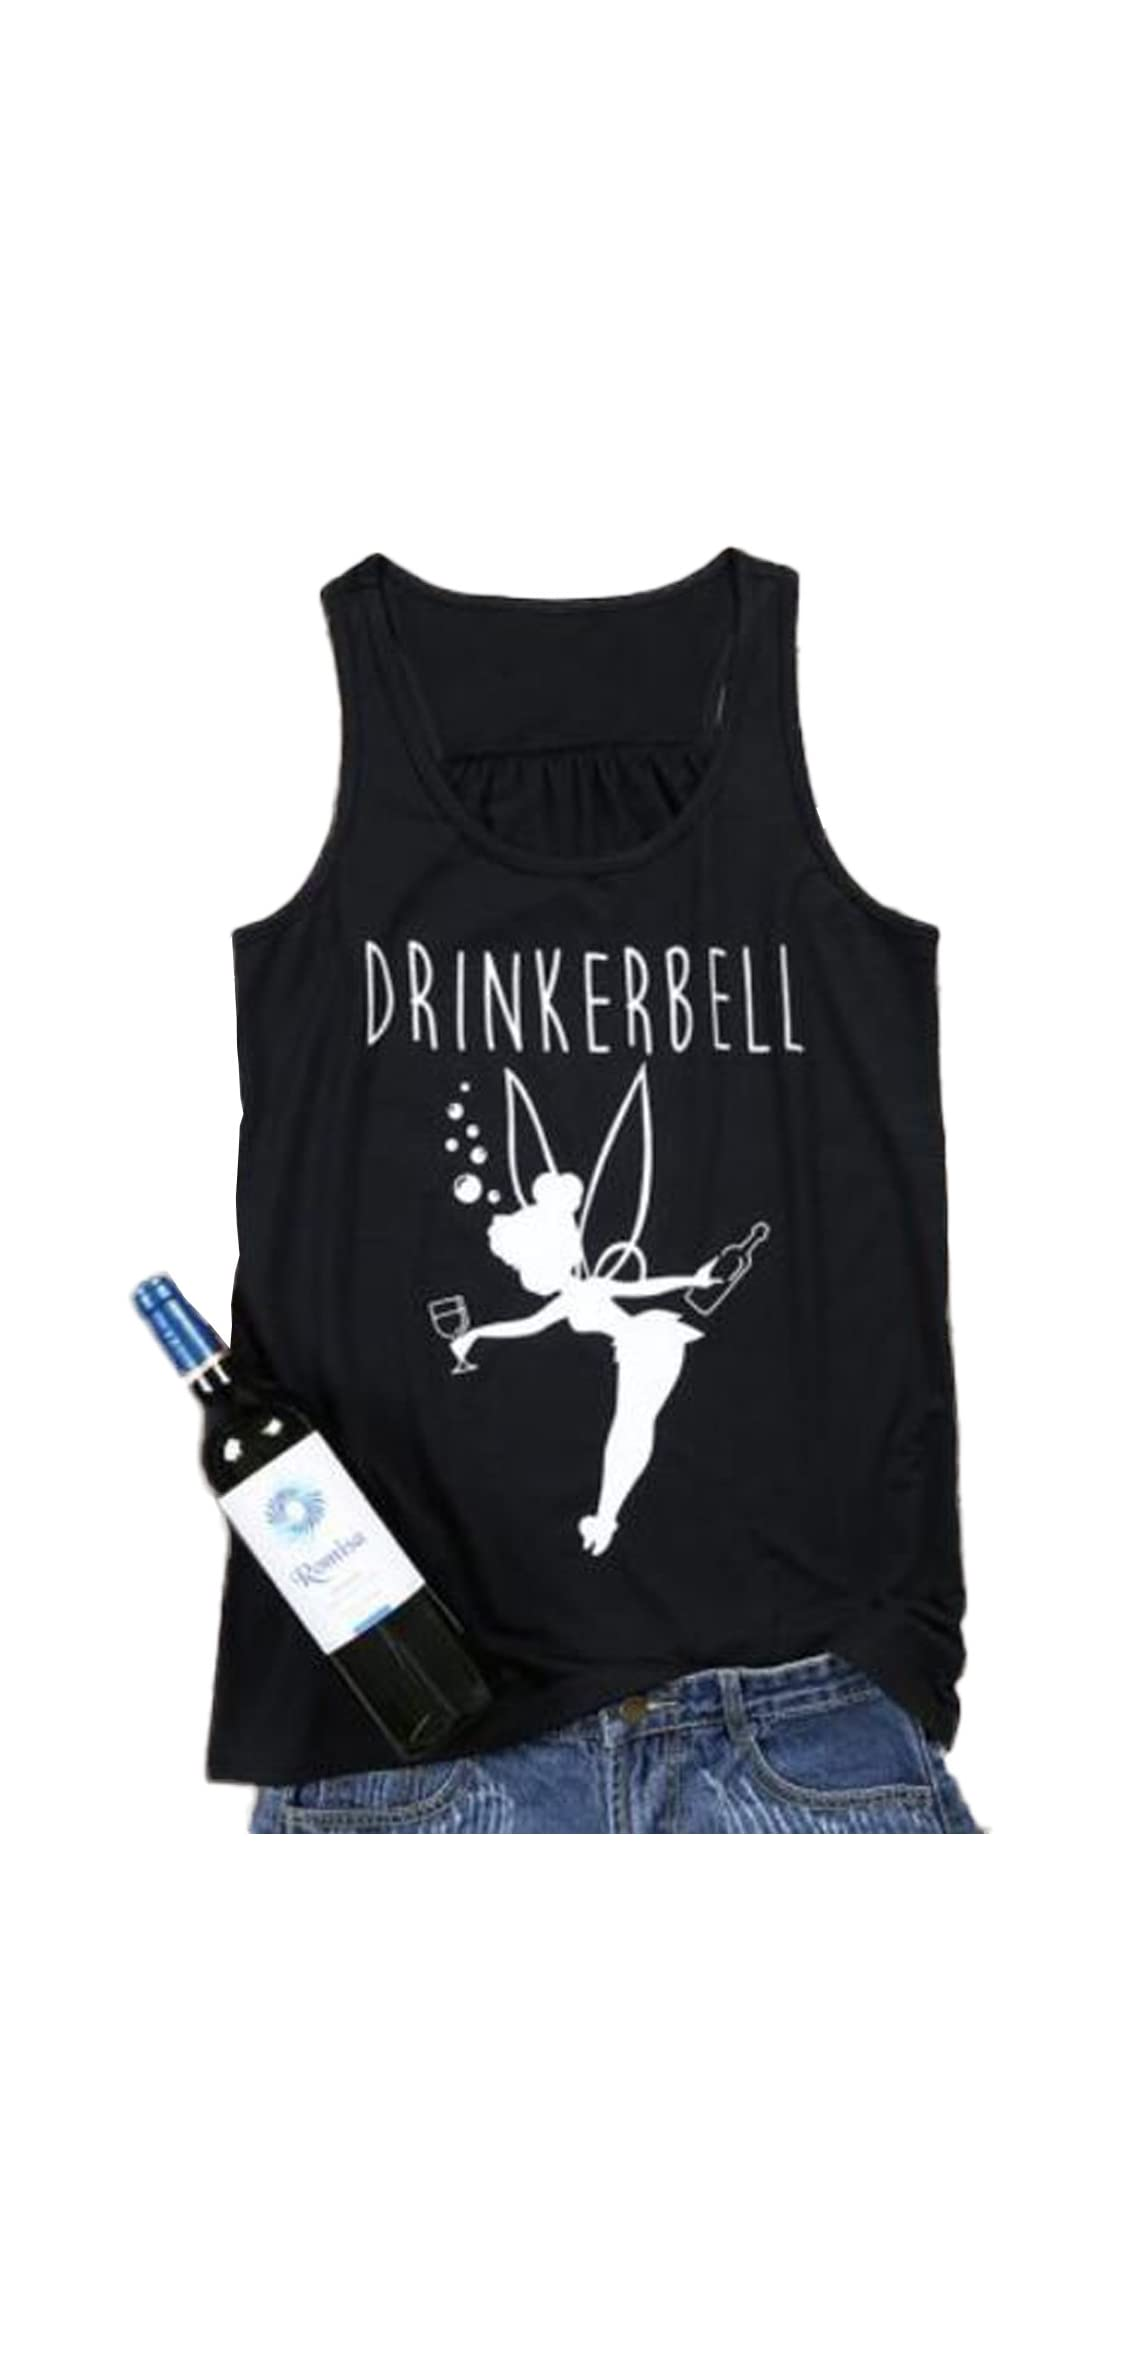 Drinkerbell Fairy Tank Tops Women Funny Drinking Shirt